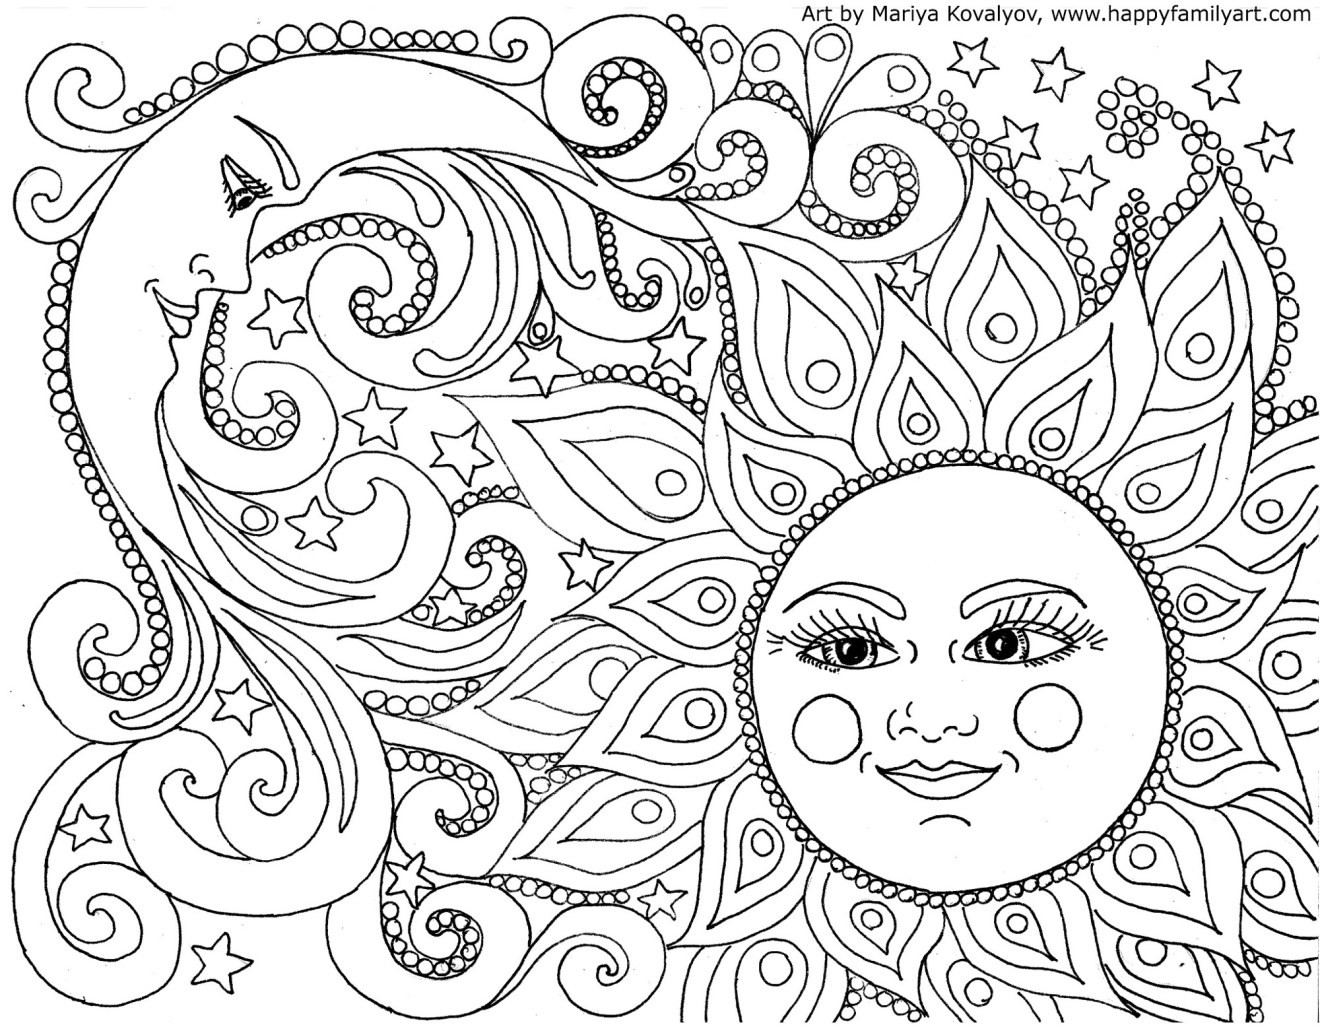 adult-coloring-book-1